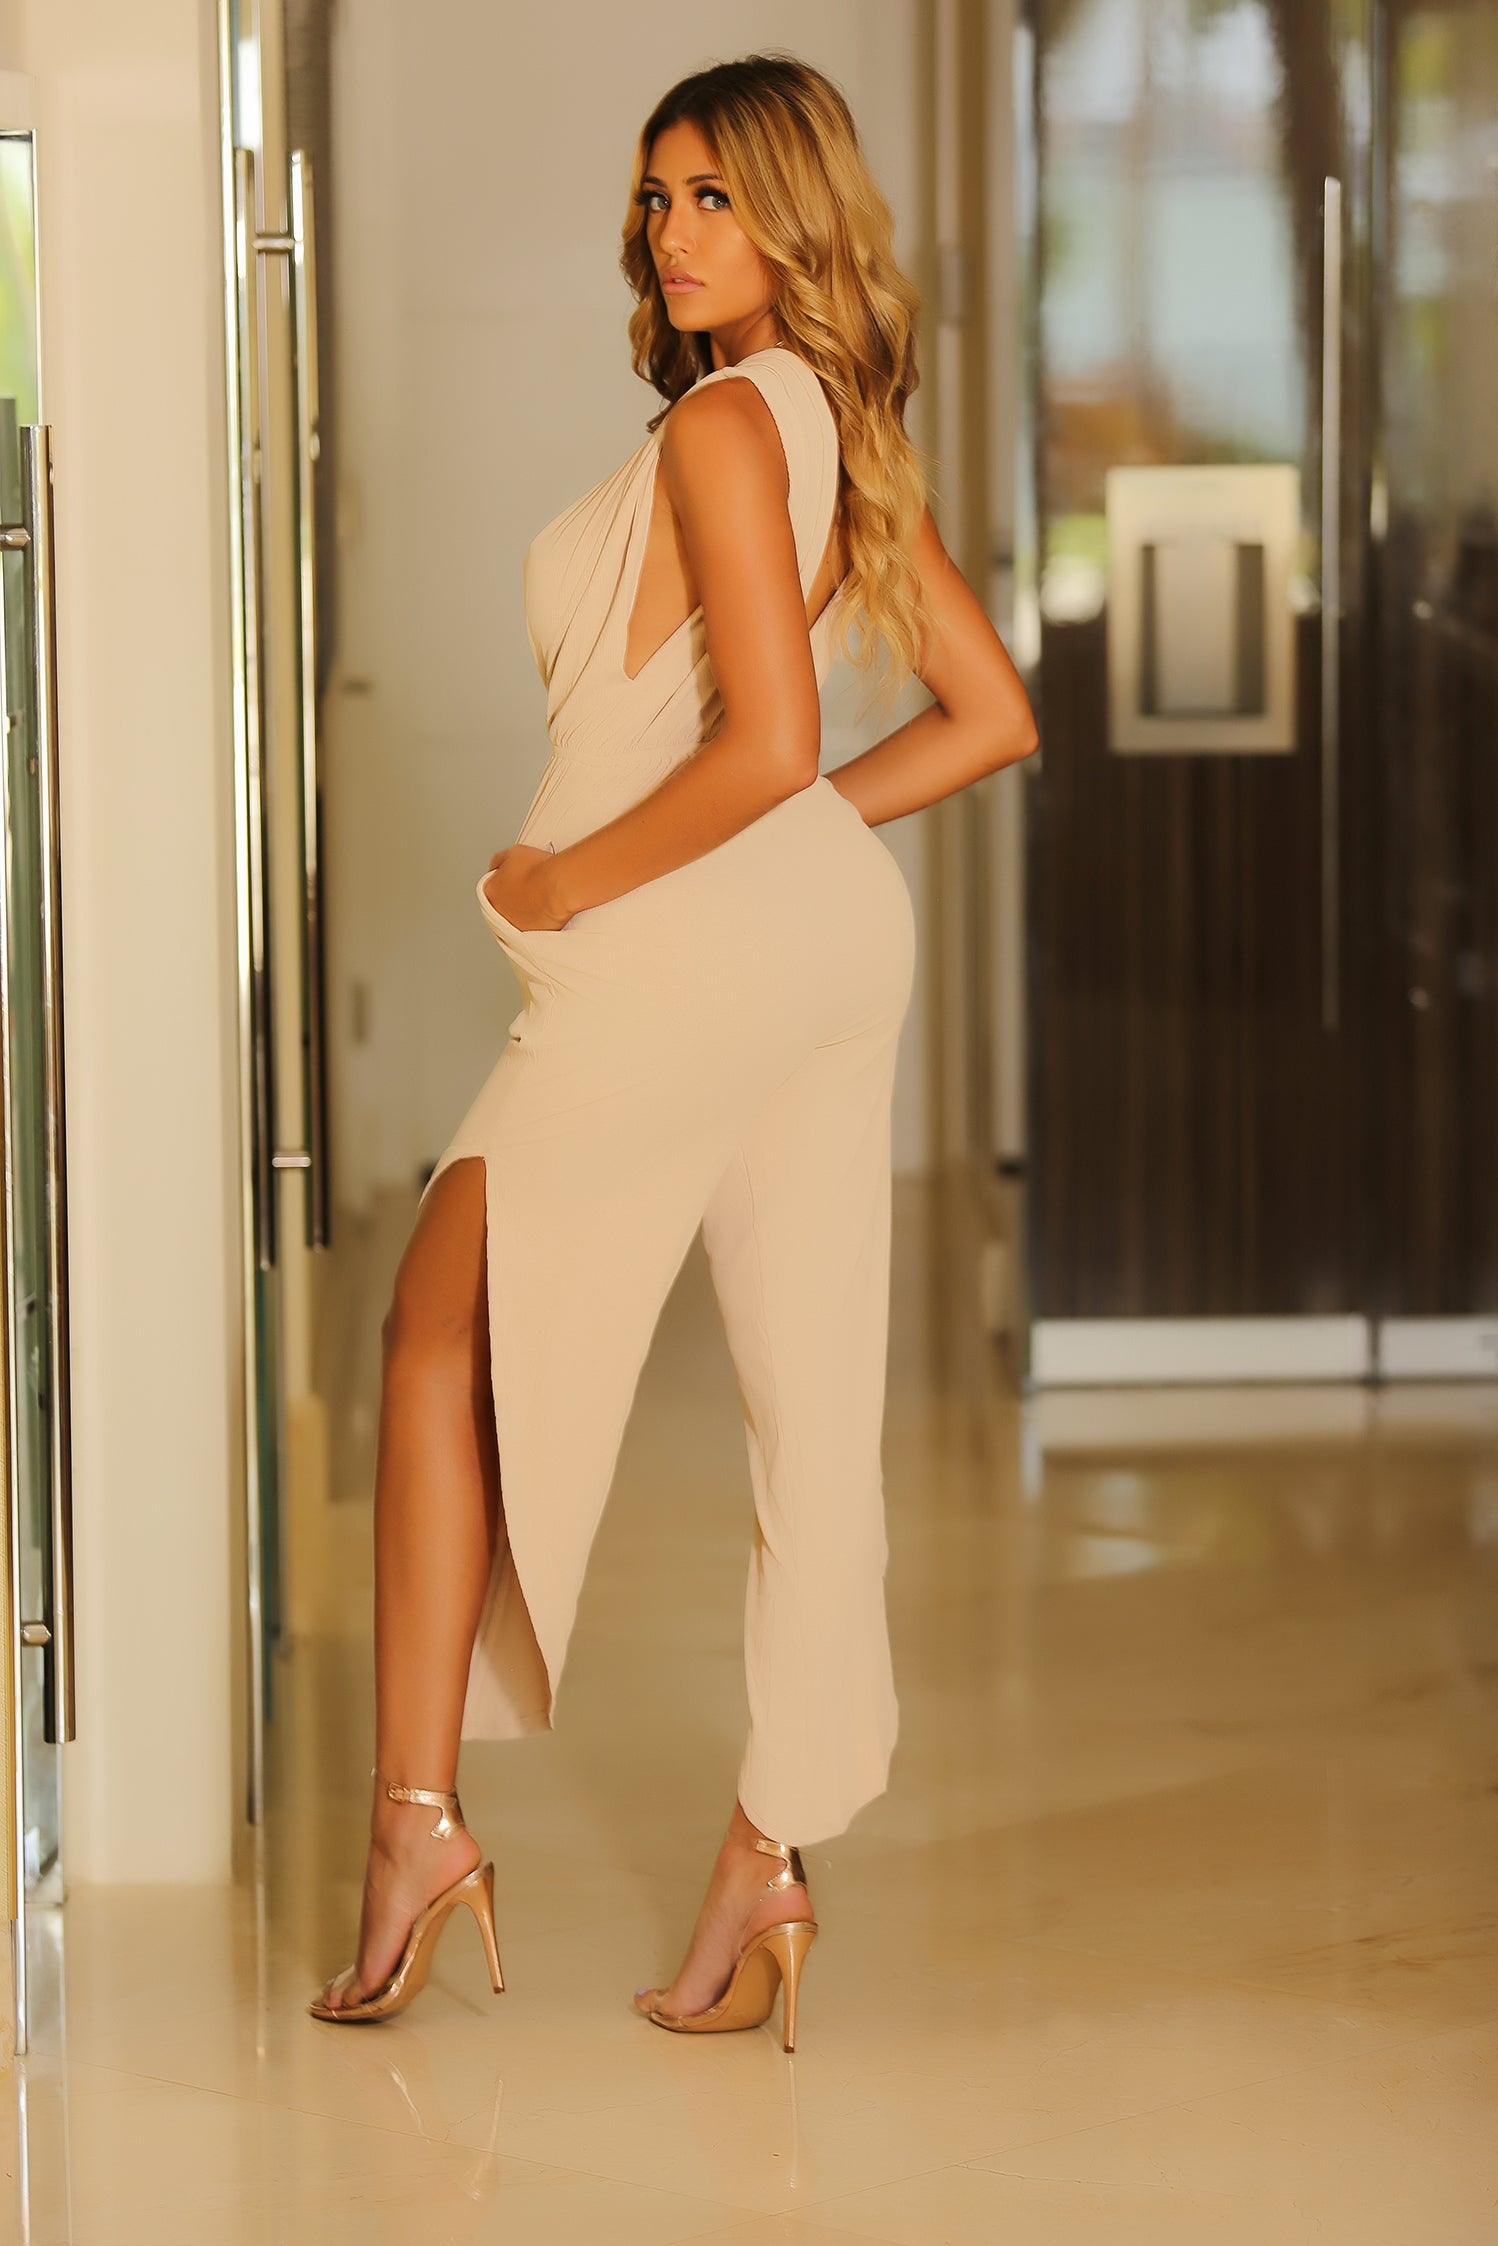 Ariel - Now Im'm In The Nude Jumpsuit - Nude - Semai House Of fashion